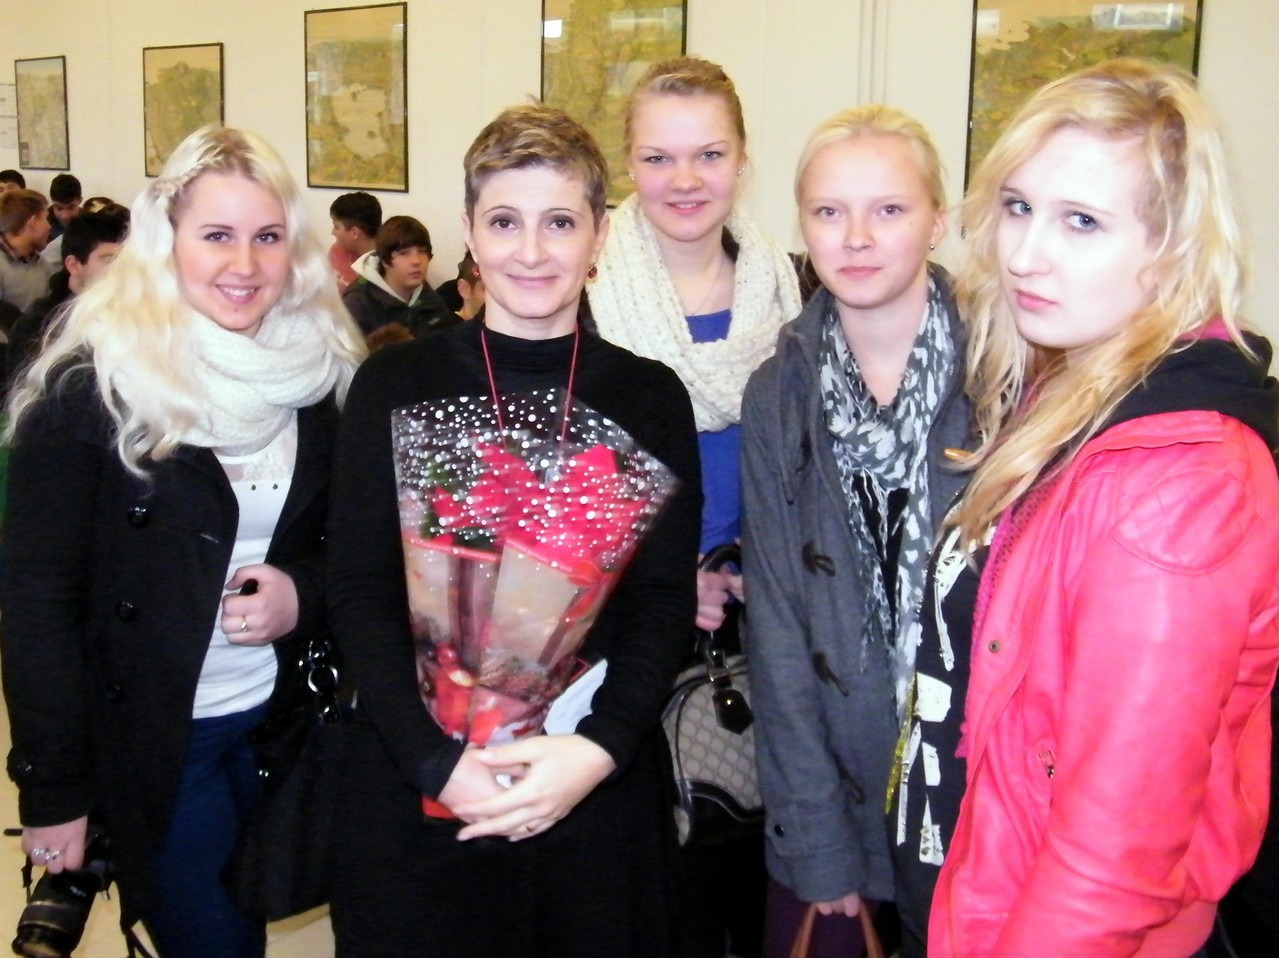 Goodbye finnish girls!